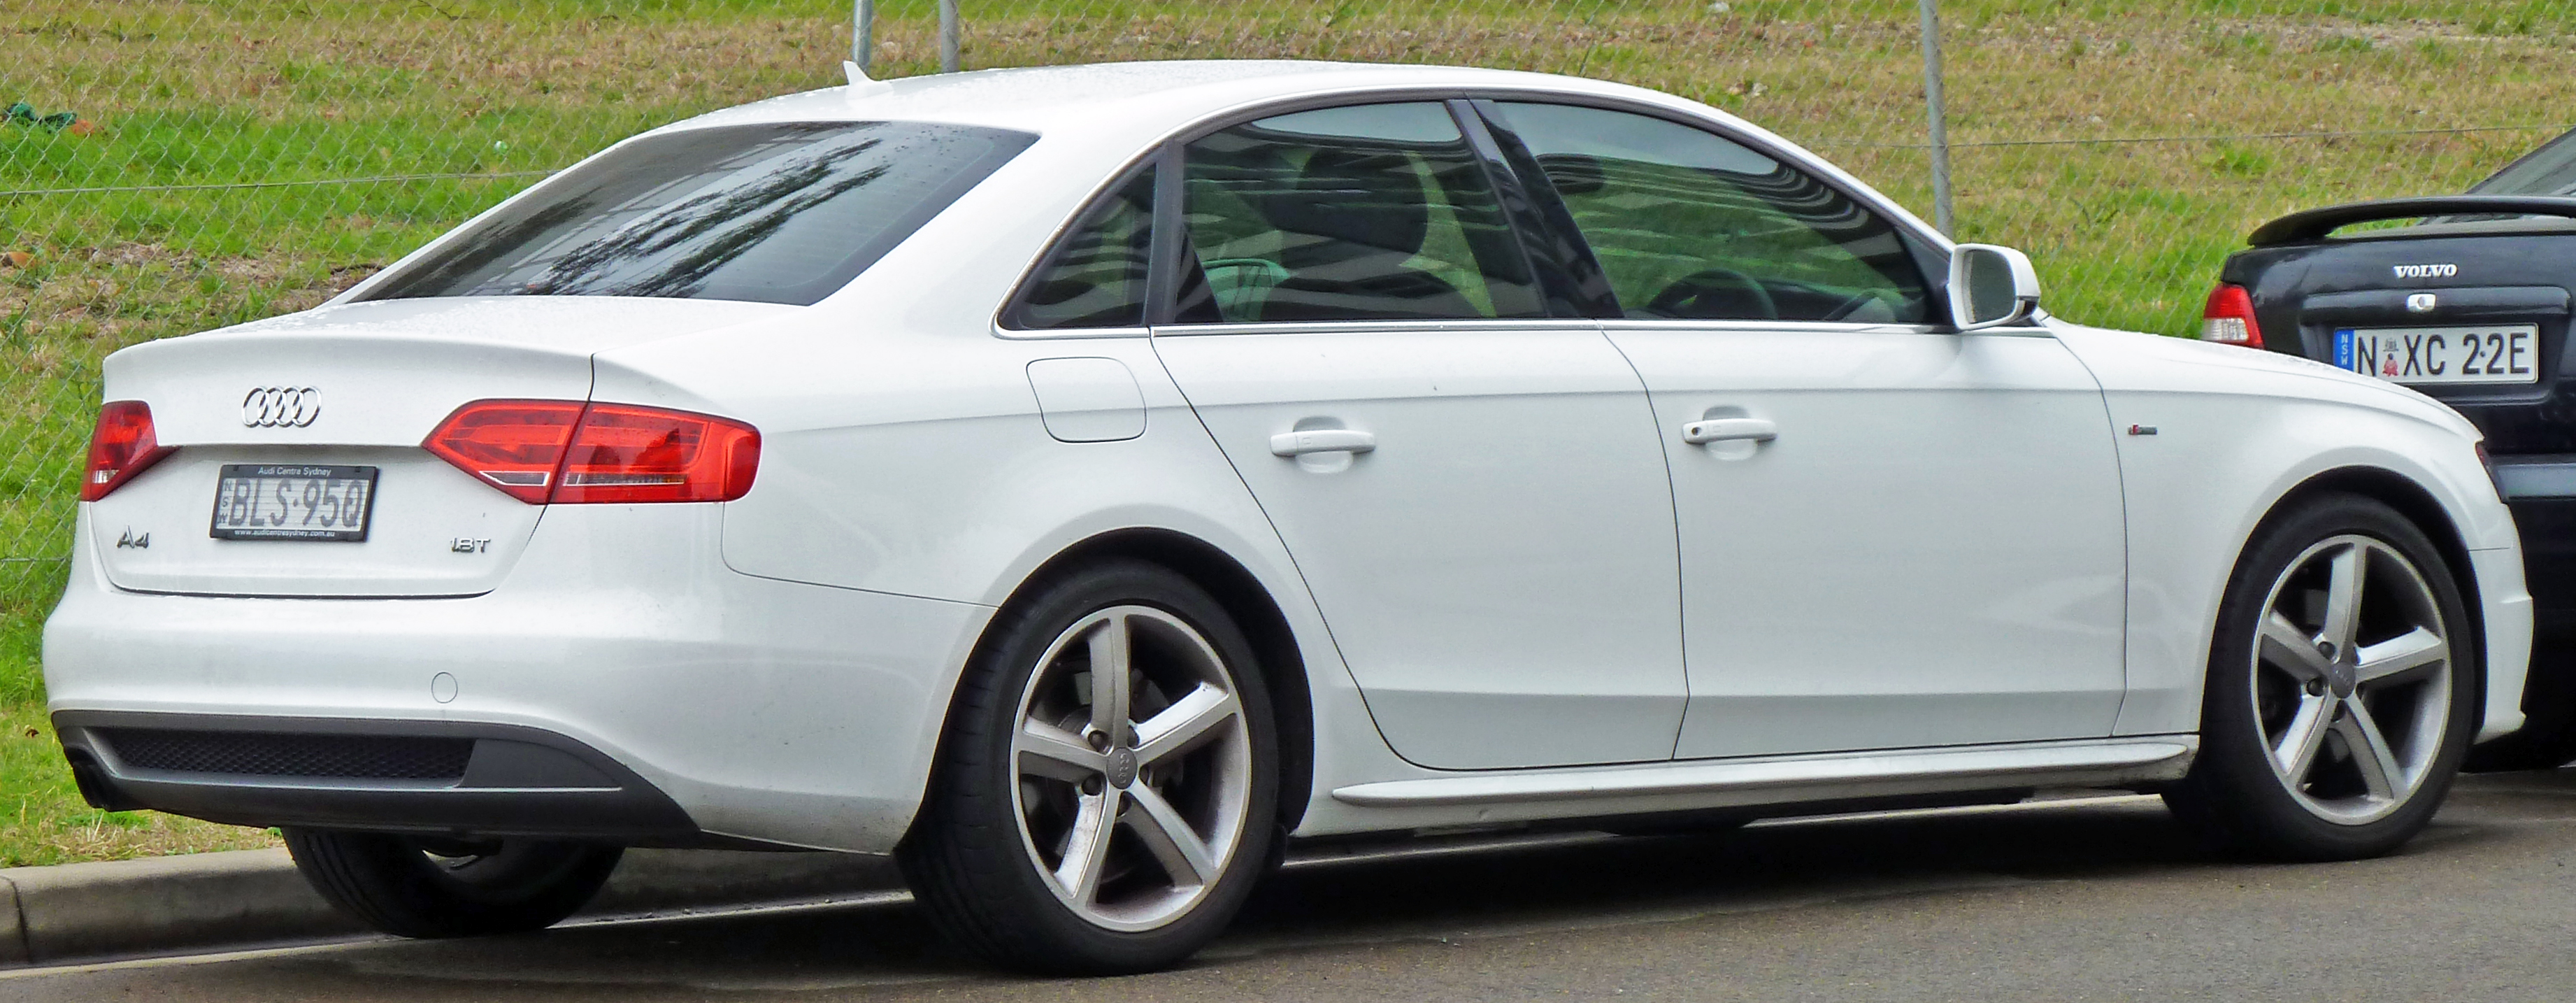 2008 audi a4 sedan b8 pictures information and specs auto. Black Bedroom Furniture Sets. Home Design Ideas